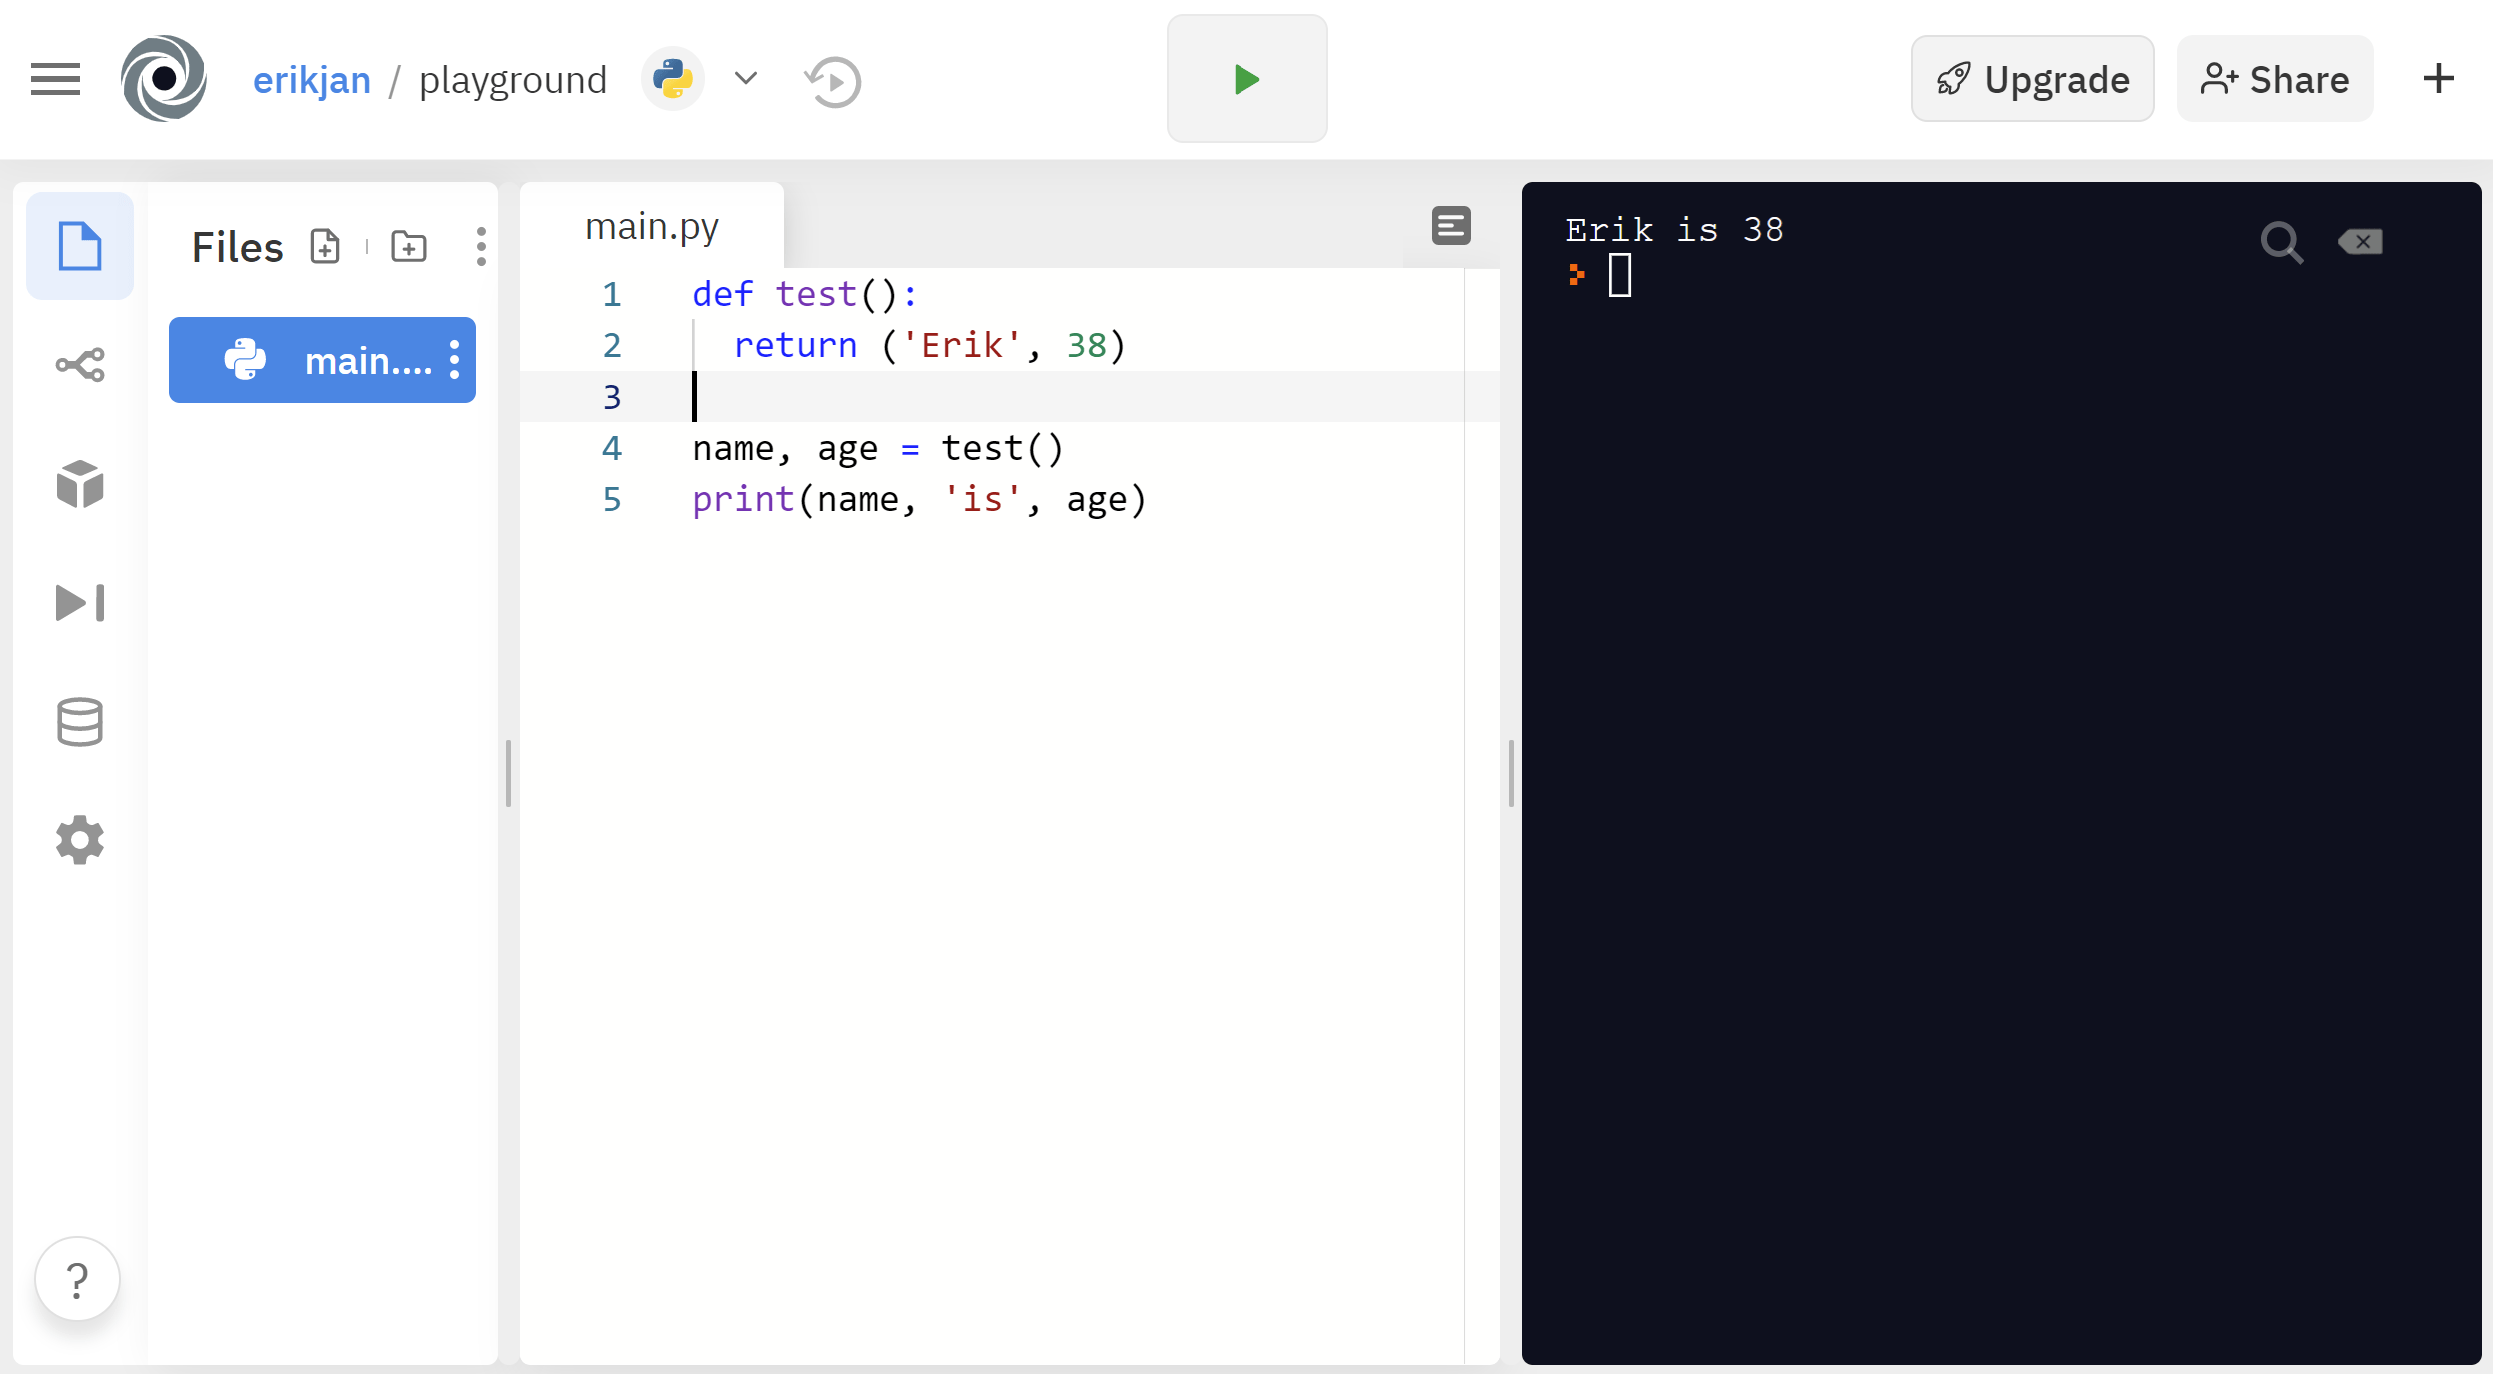 Repl.it offers you a complete Python IDE in the browser